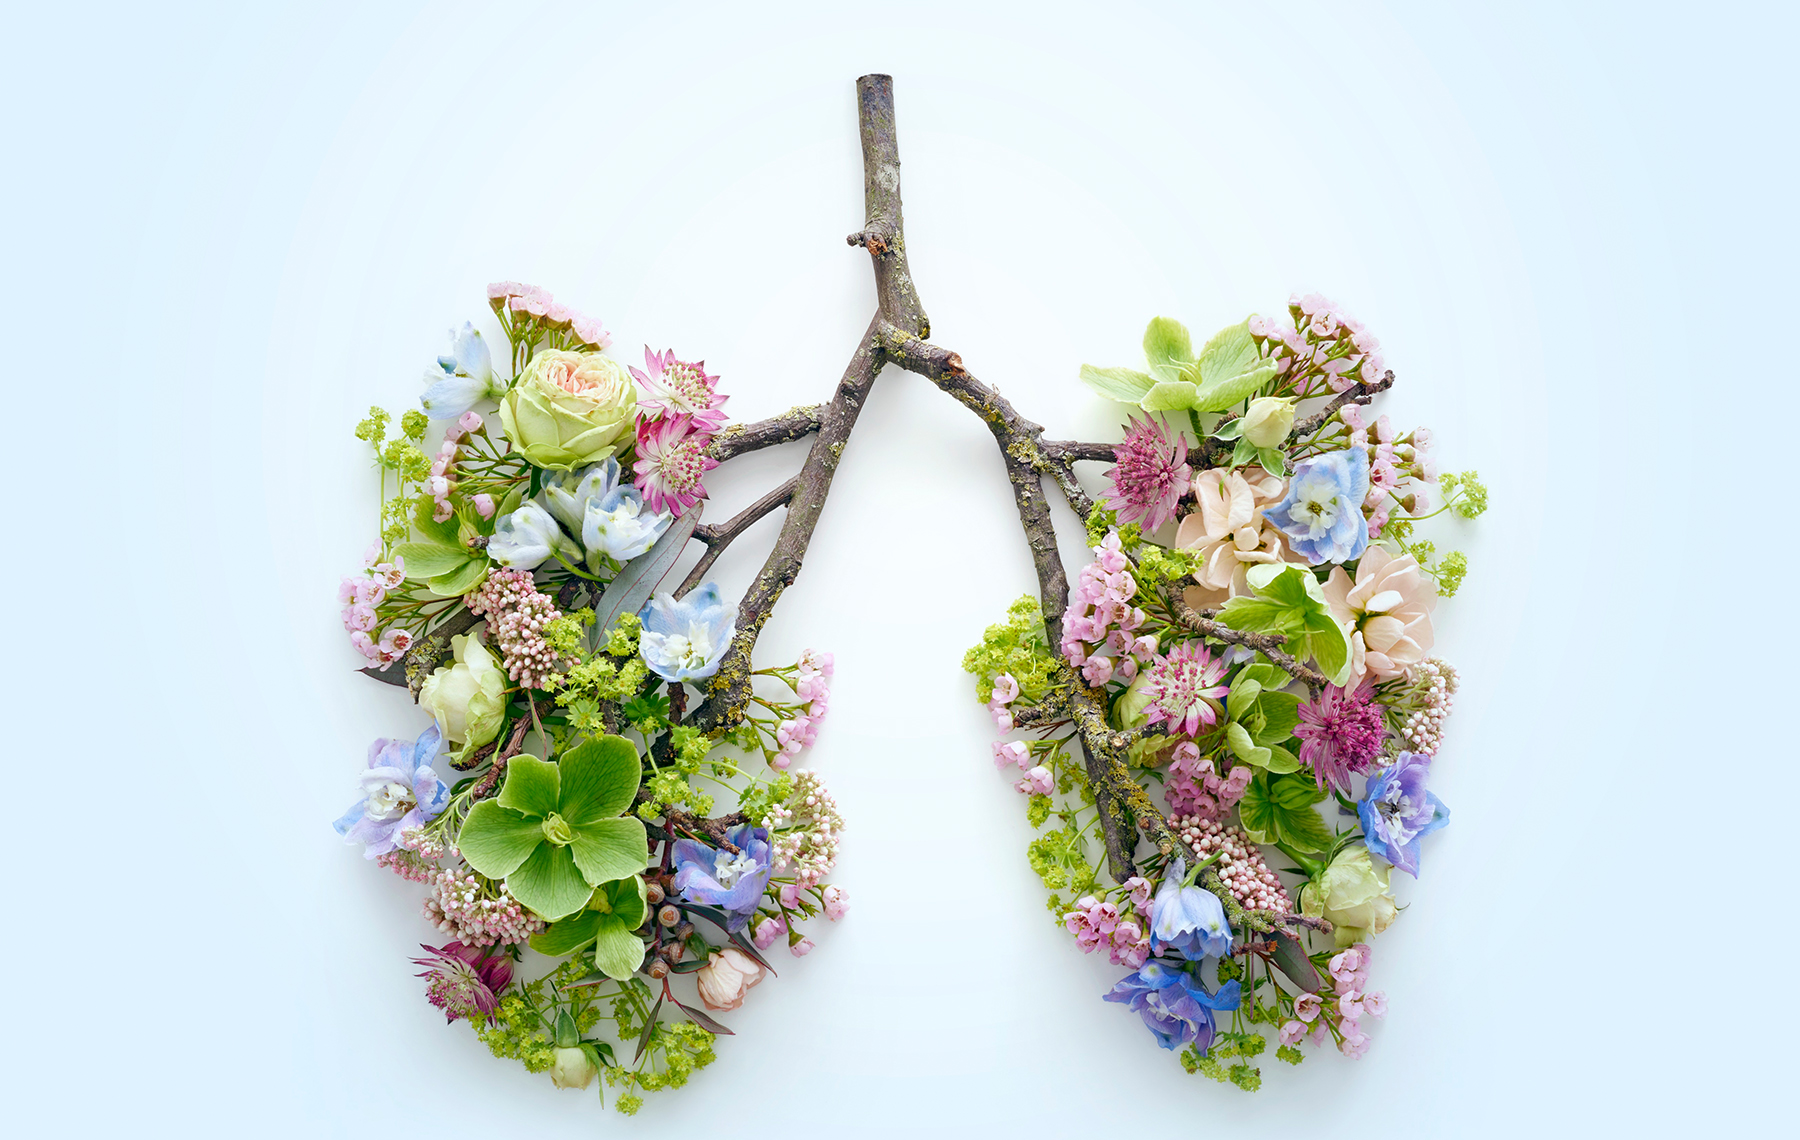 Flowers and a branch mocking human lungs